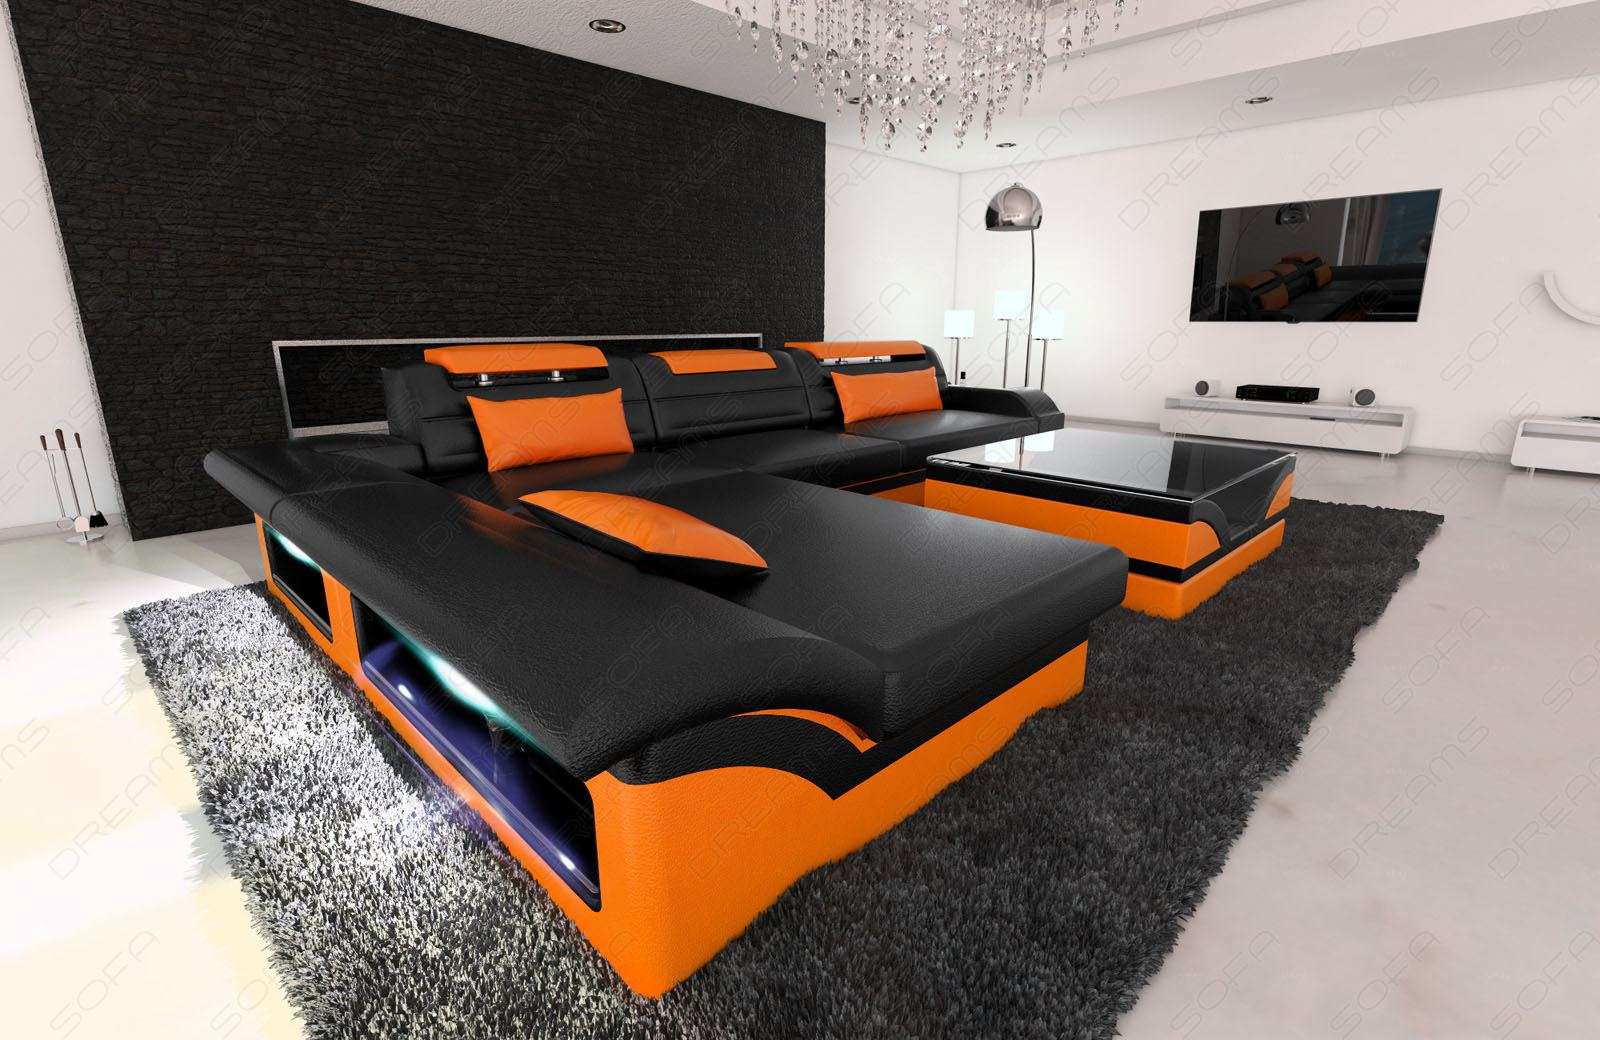 ledersofa monza l form designersofa mit rgb led beleuchtung kaufen bei. Black Bedroom Furniture Sets. Home Design Ideas